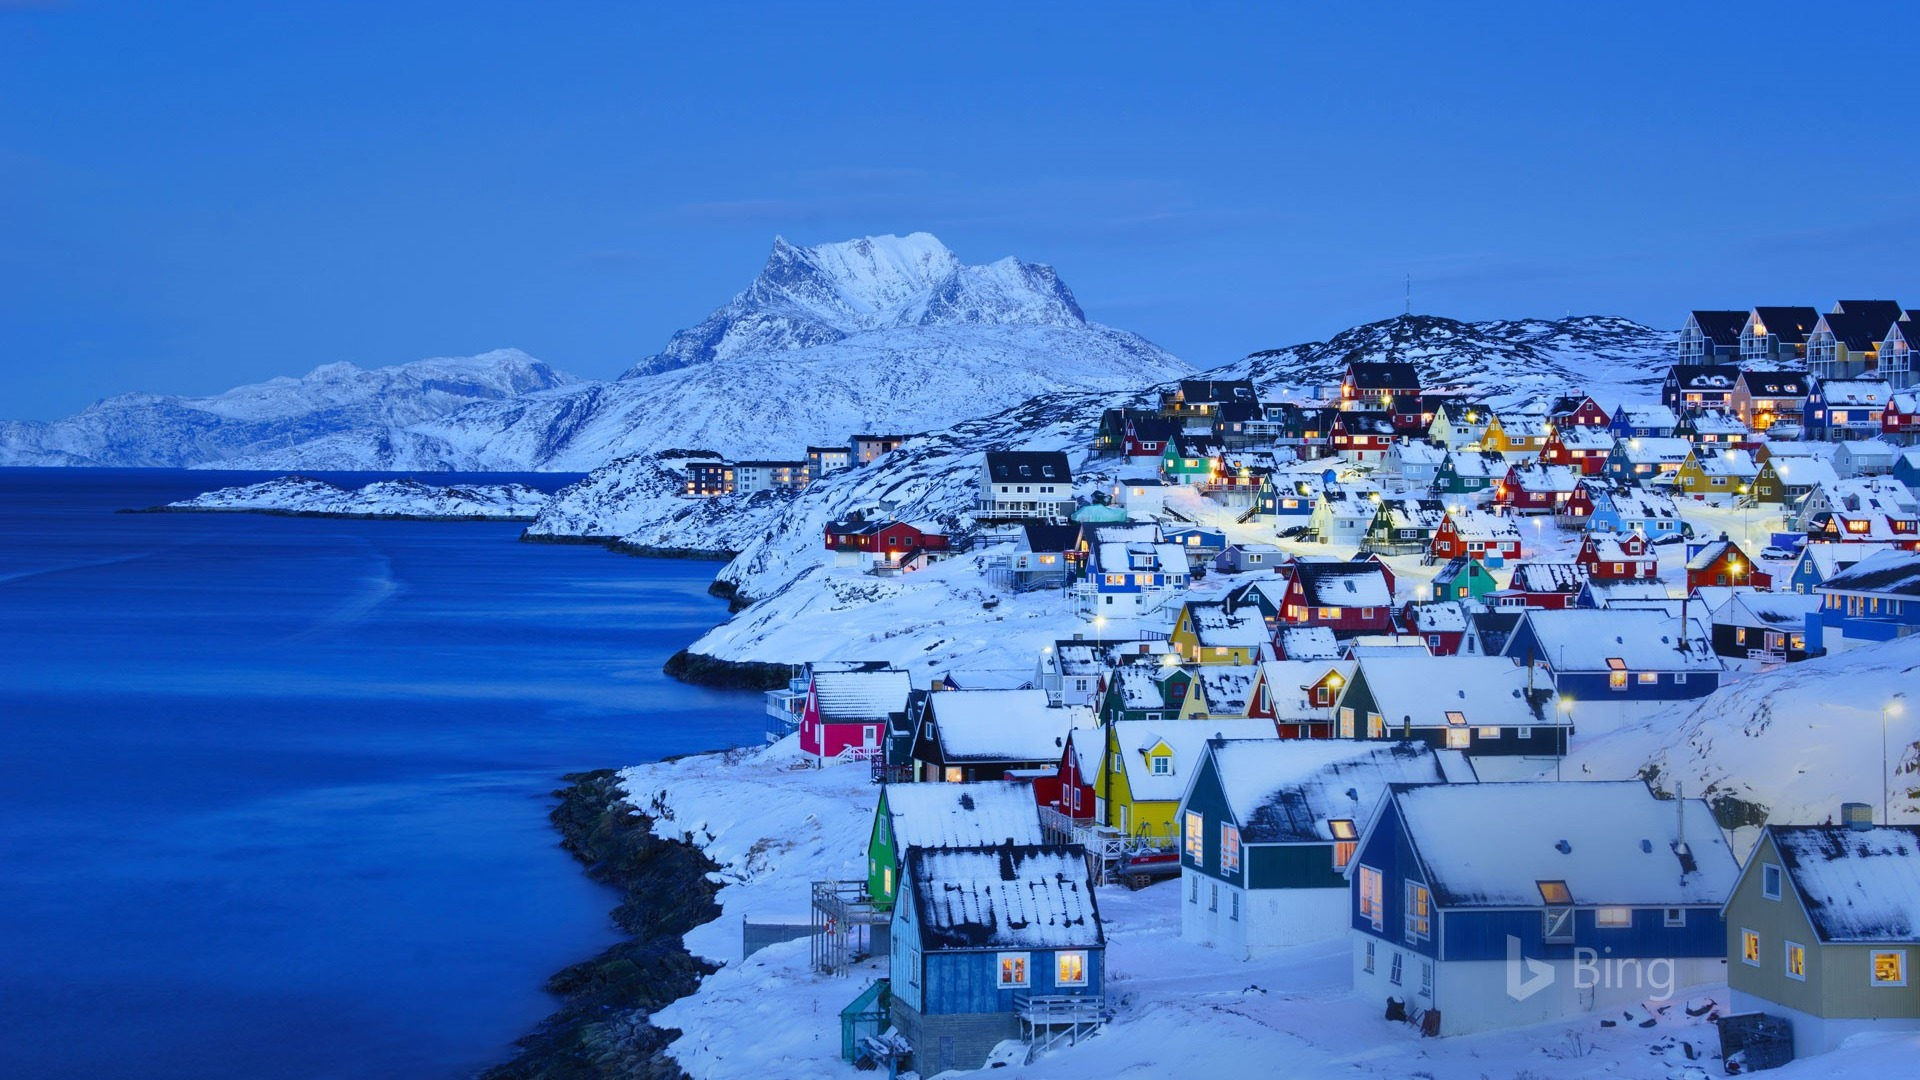 Iphone X Official Wallpaper Hd Old Nuuk In Nuuk Greenland 2019 Bing Wallpaper Preview